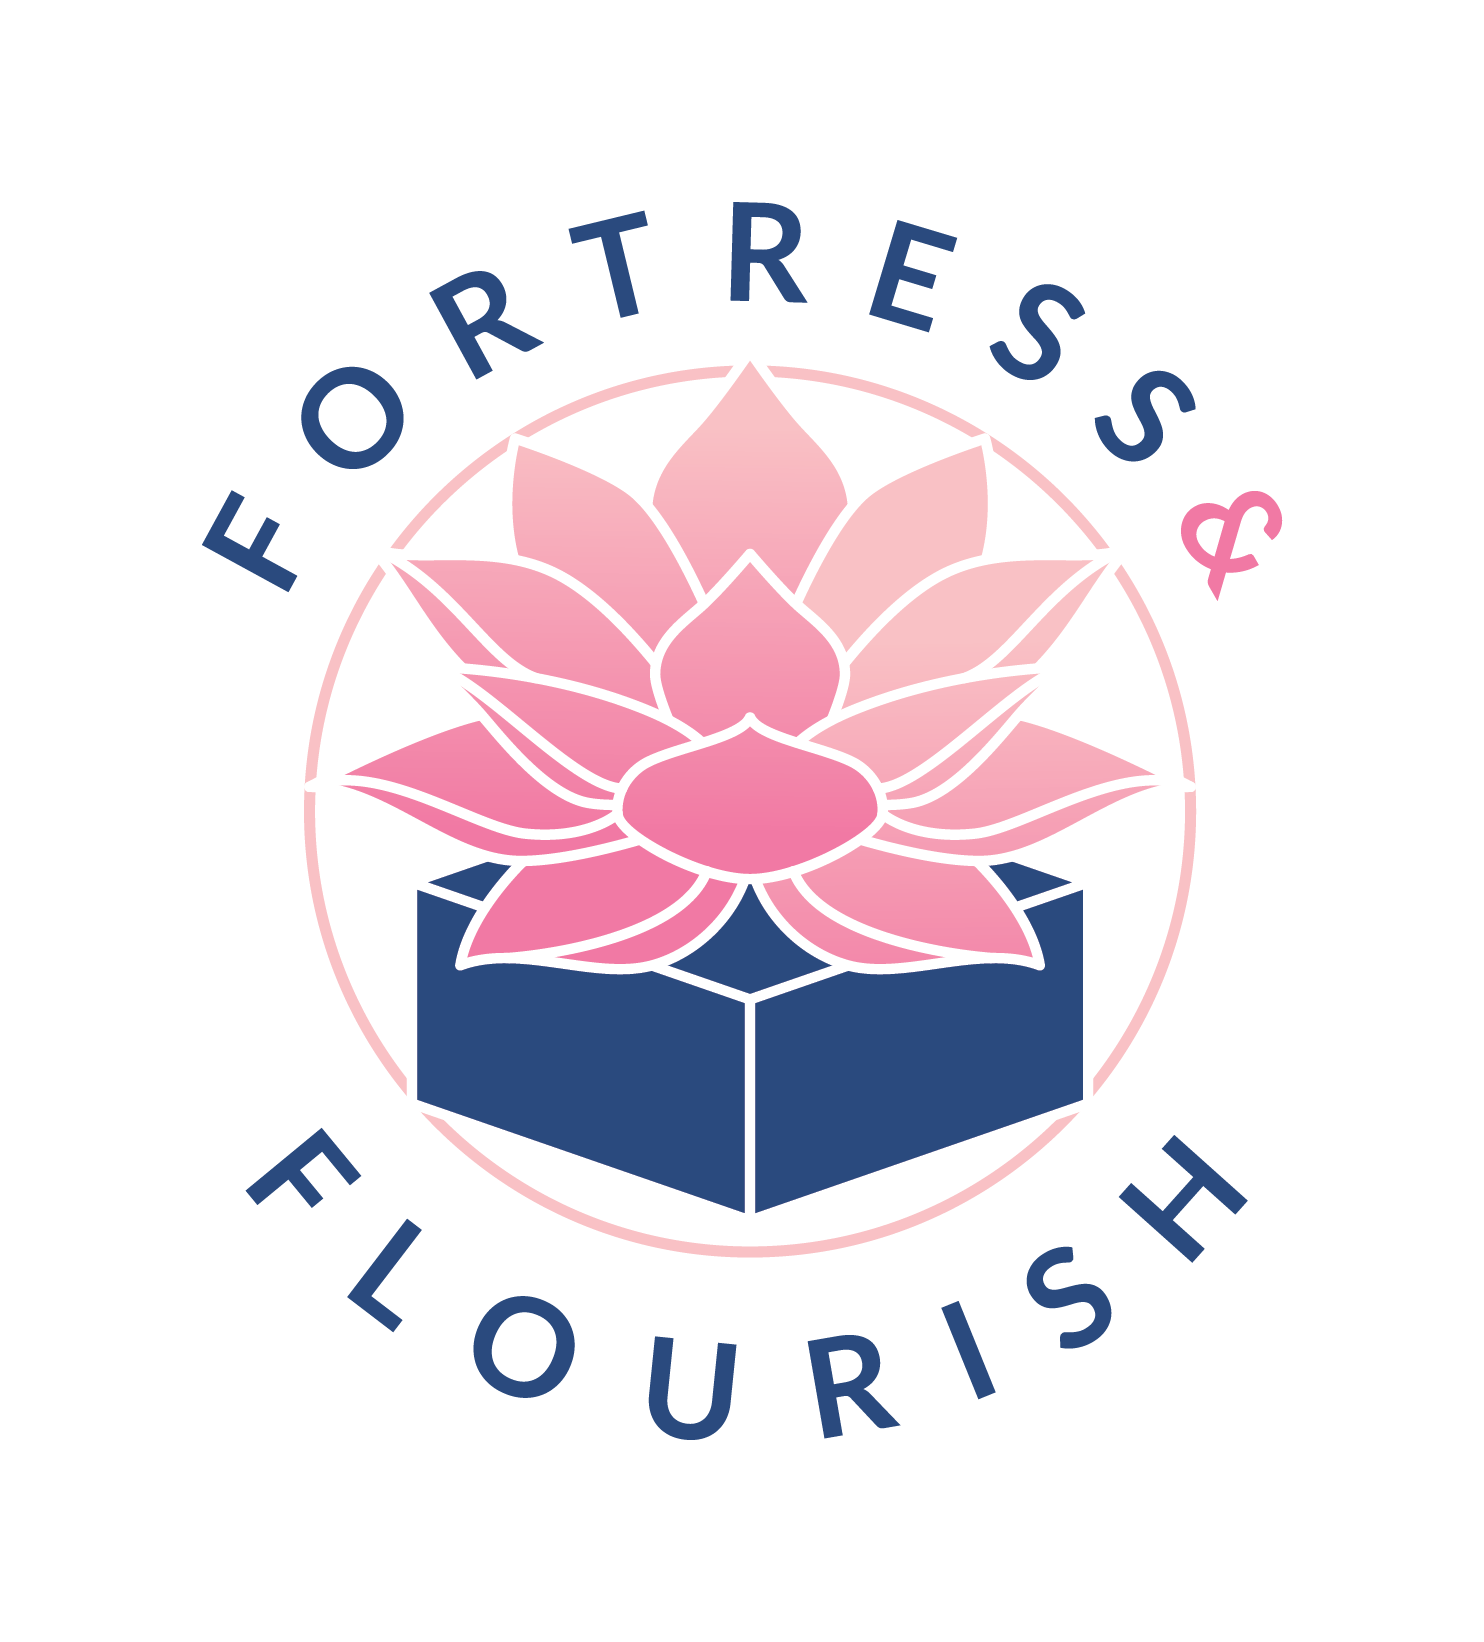 Fortress and Flourish